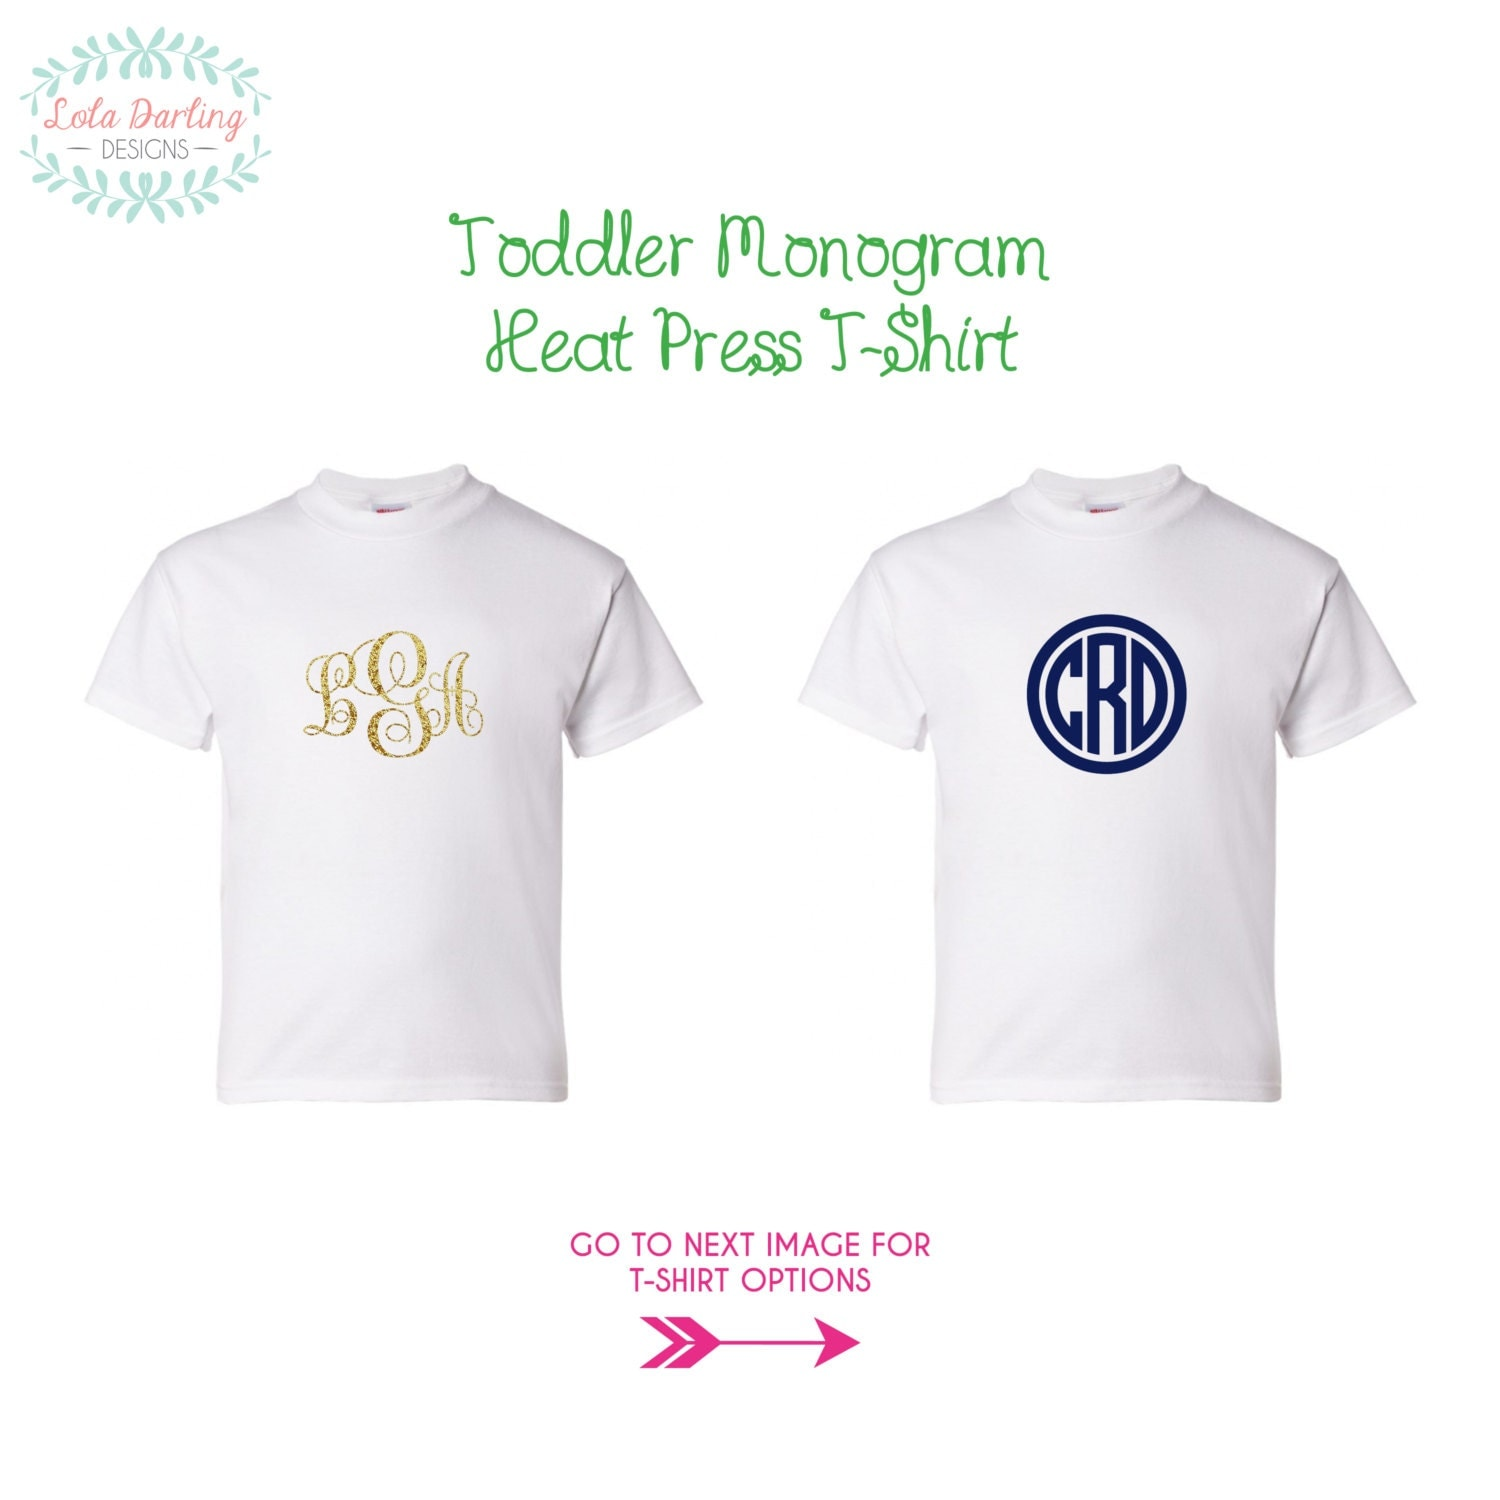 Monogram toddler heat press t shirt by loladarlingdesigns for Heat pressing t shirts